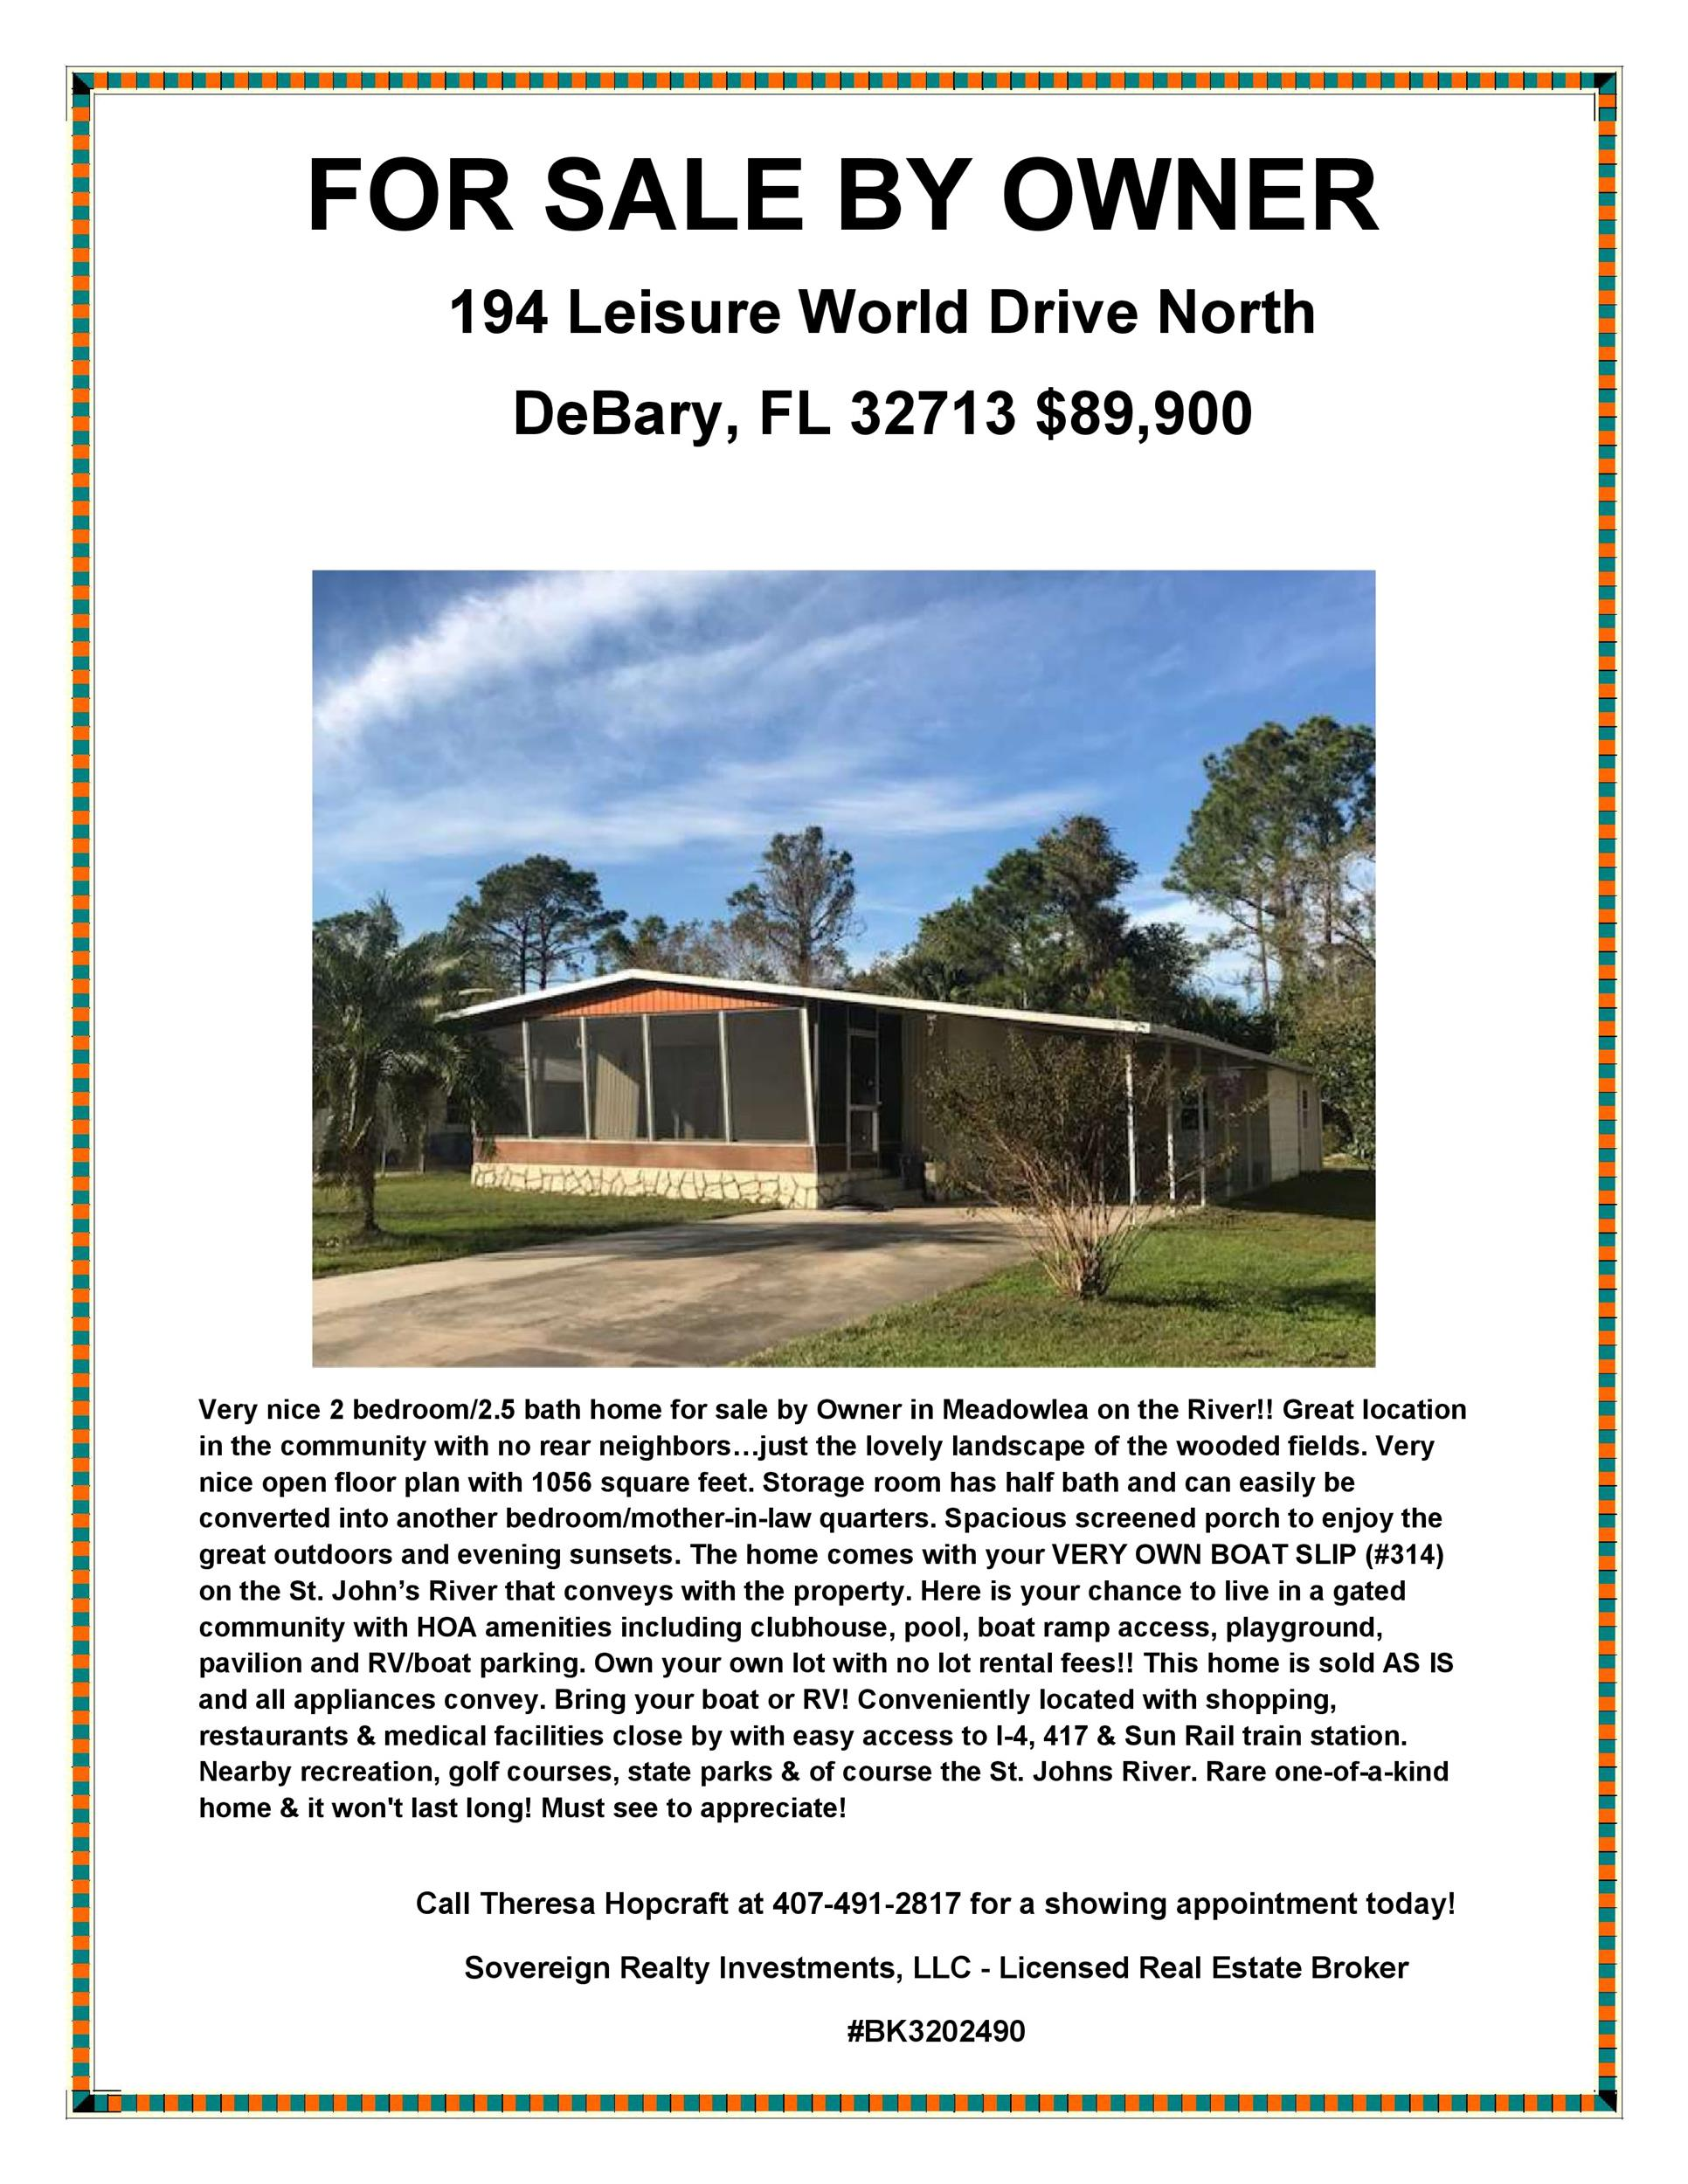 Free house for sale flyer 37